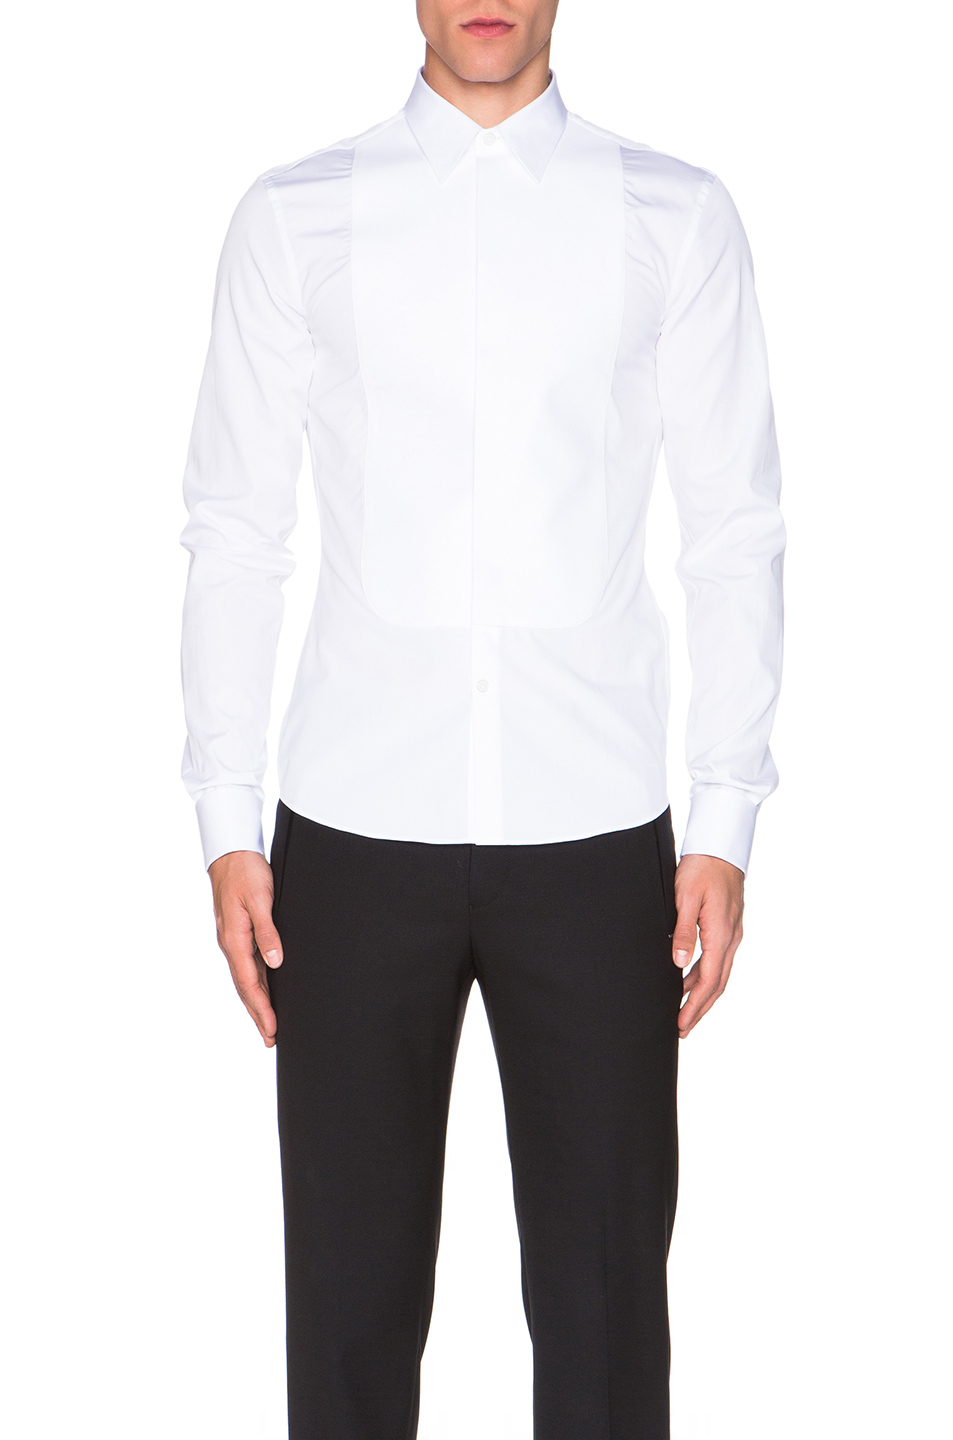 Givenchy Slim Fit Bib Shirt in White